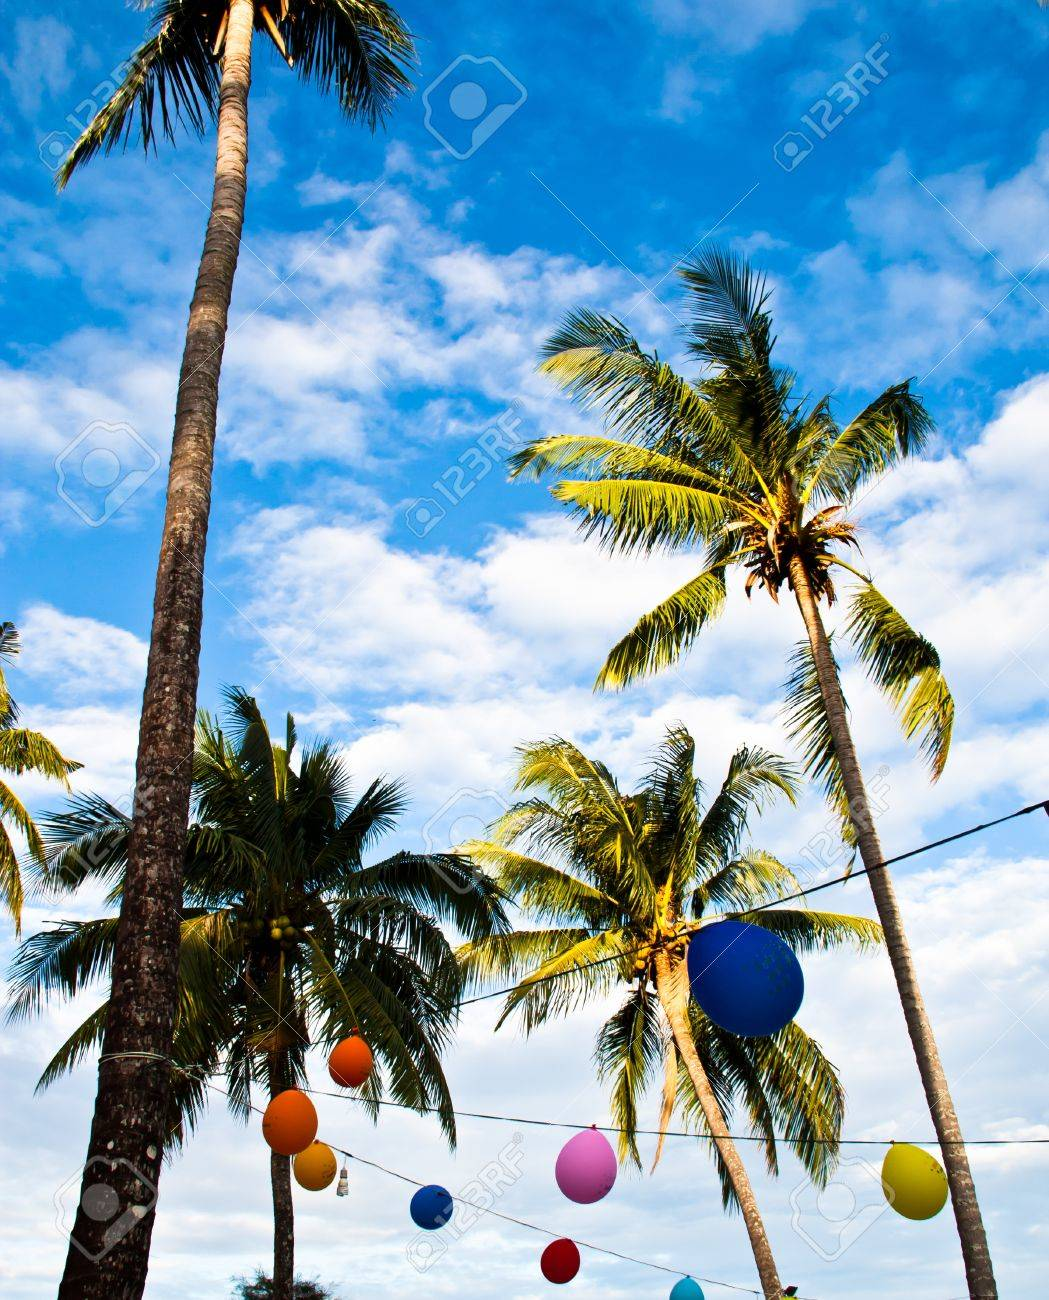 Coconut trees with multi-colored balloons. Was designed as part of the carnival. Stock Photo - 12291738